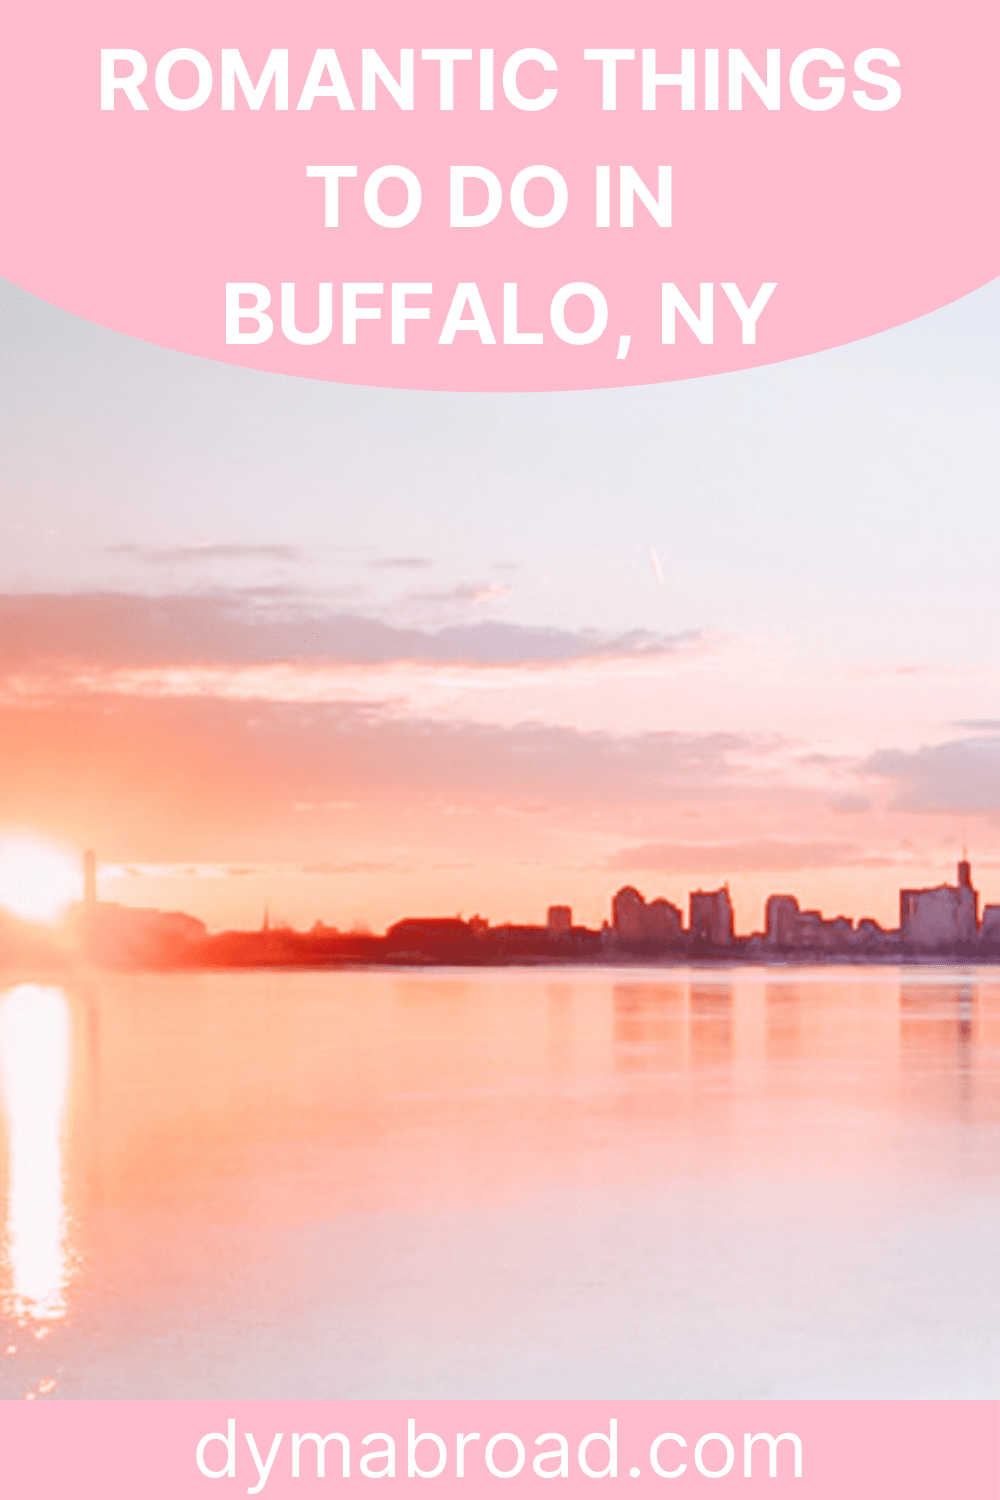 Romantic things to do in Buffalo second Pinterest image